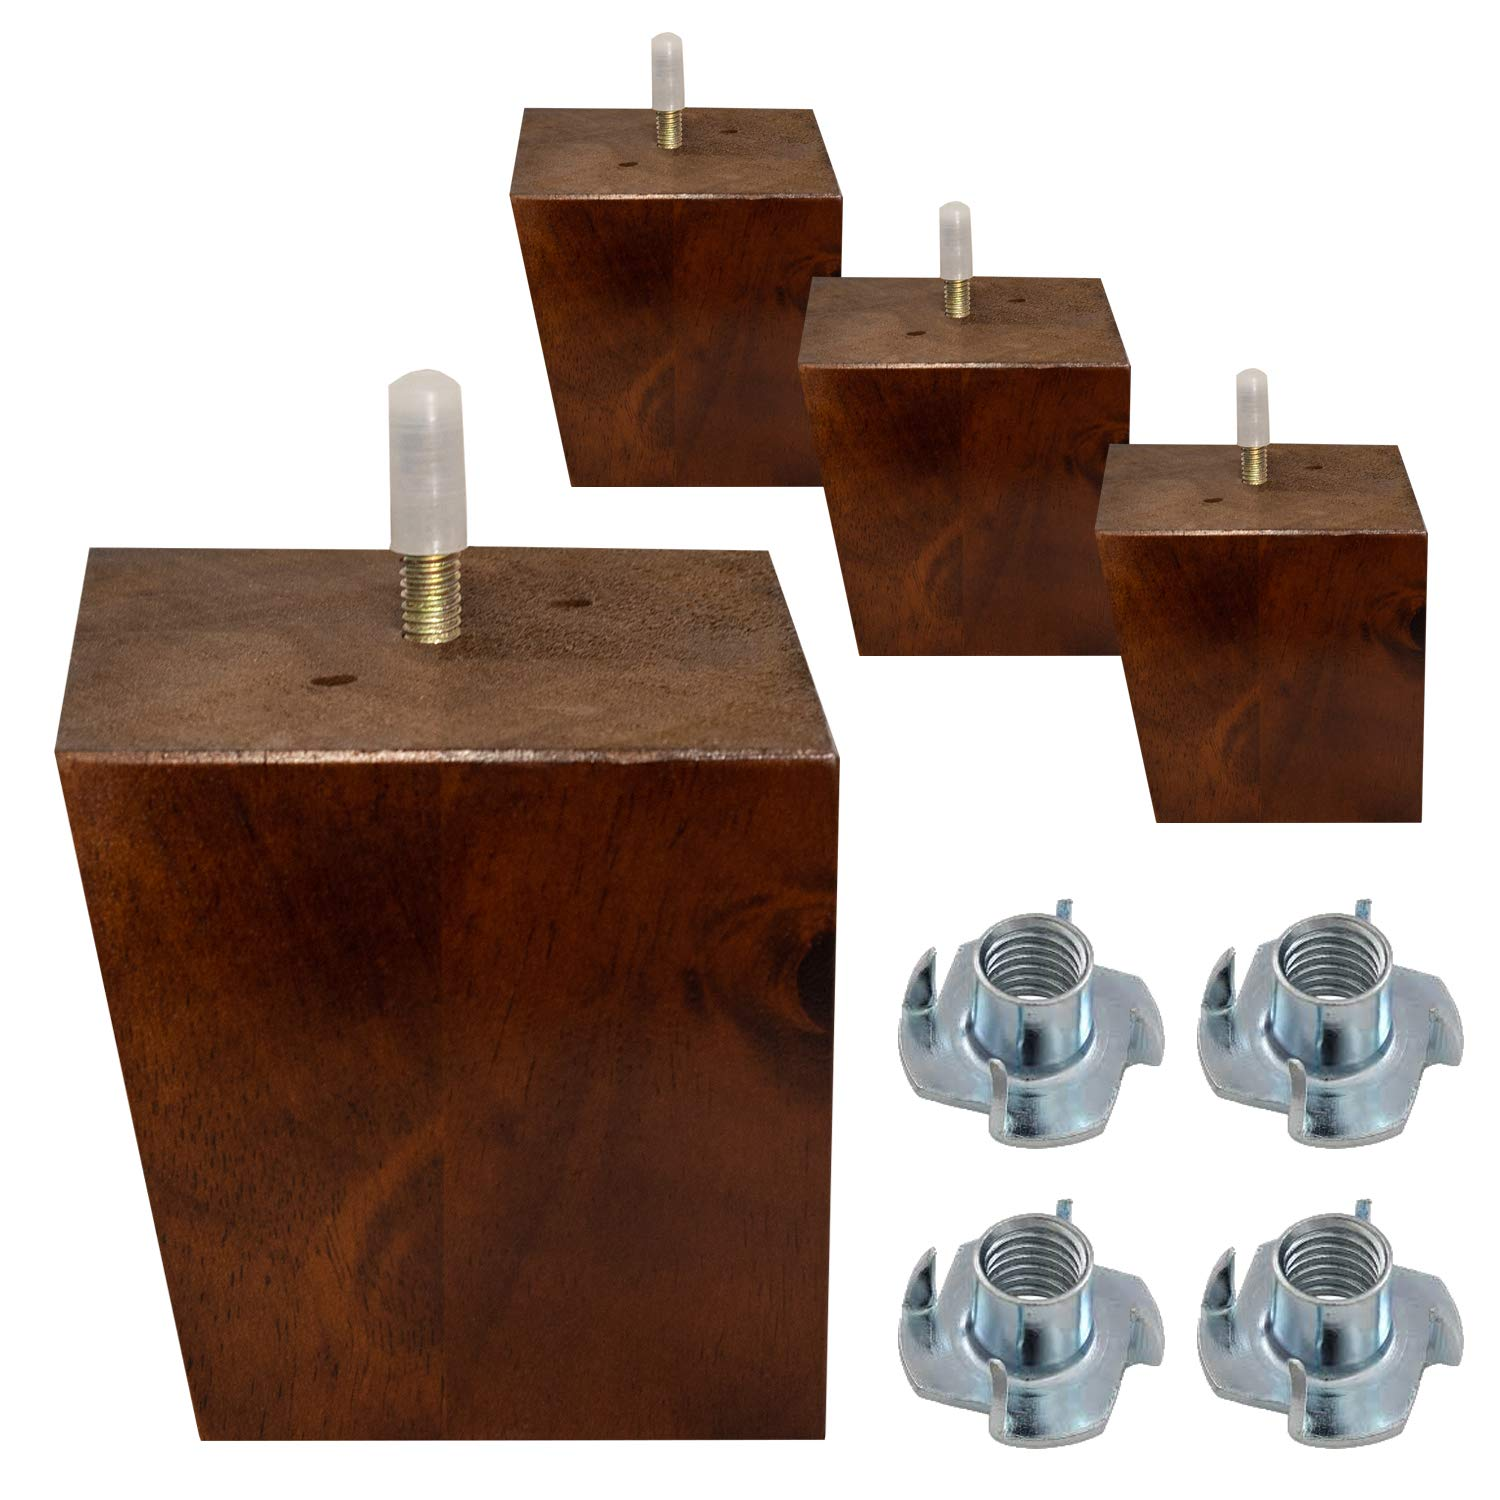 """ComfortStyle Furniture Legs, Sofa Ottoman and Chair 3.5"""" Wood Feet Replacement, Set of 4 Mid Century Modern Angled Feet, Walnut Finish"""